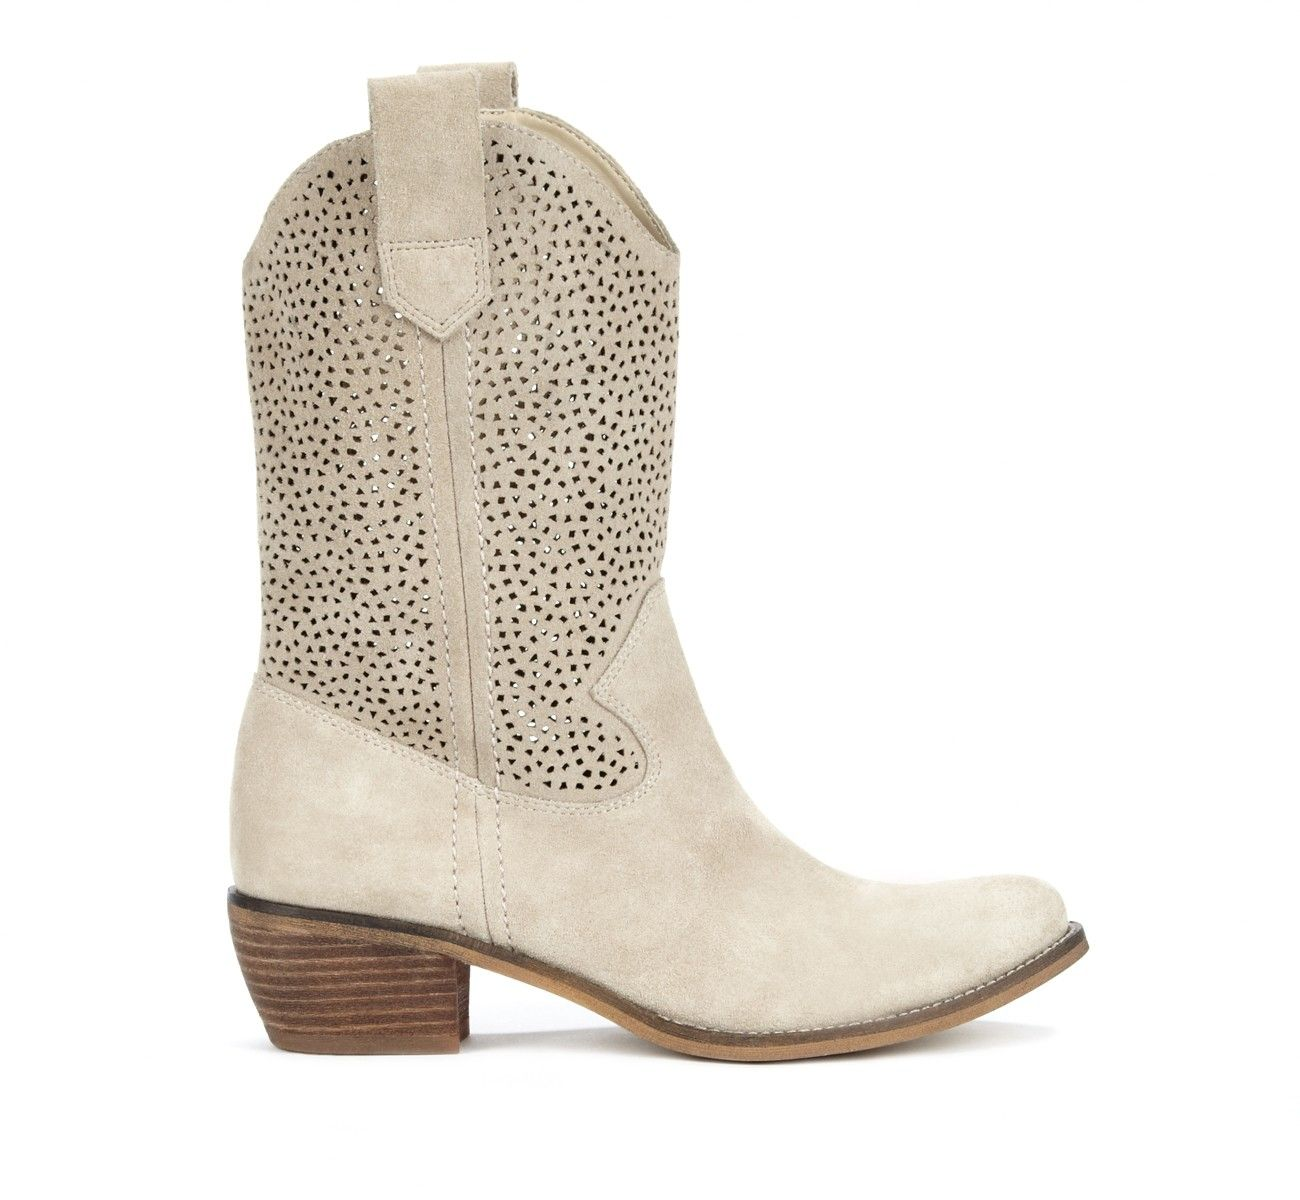 great short cowboy boots with perforated leather... nice for warmer weather